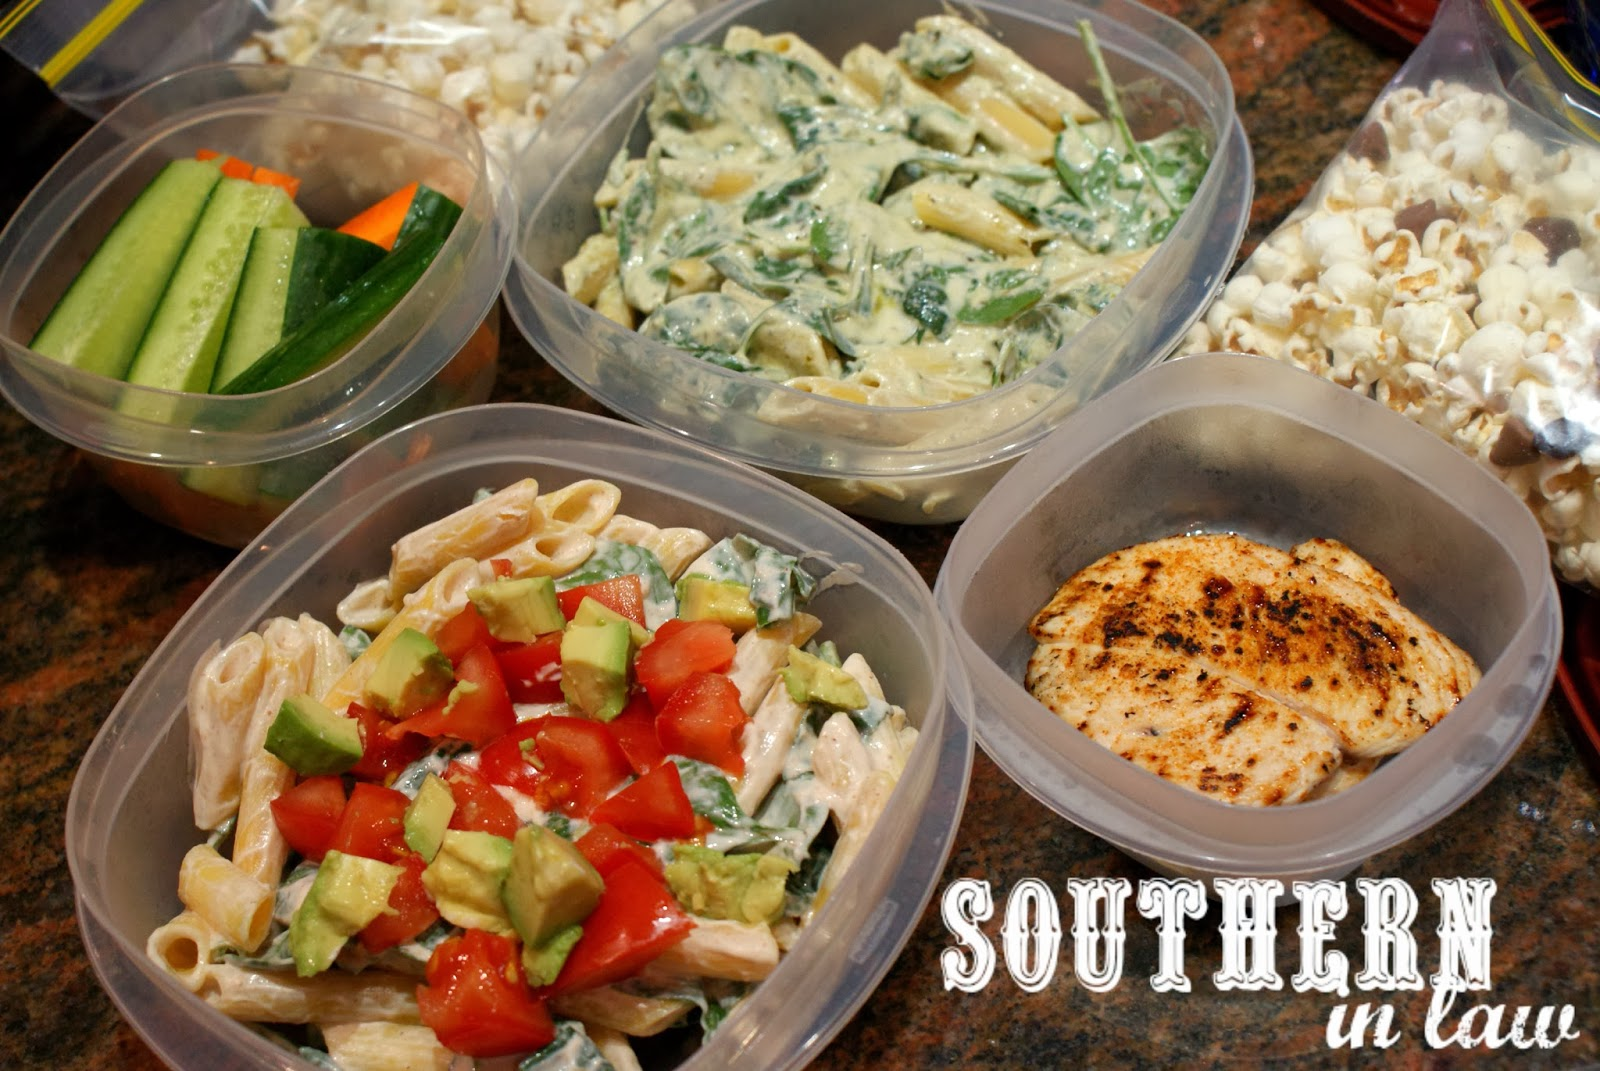 Picnic Date Night at the Sunset Cinema - Cold pasta salad, veggies and popcorn trail mix